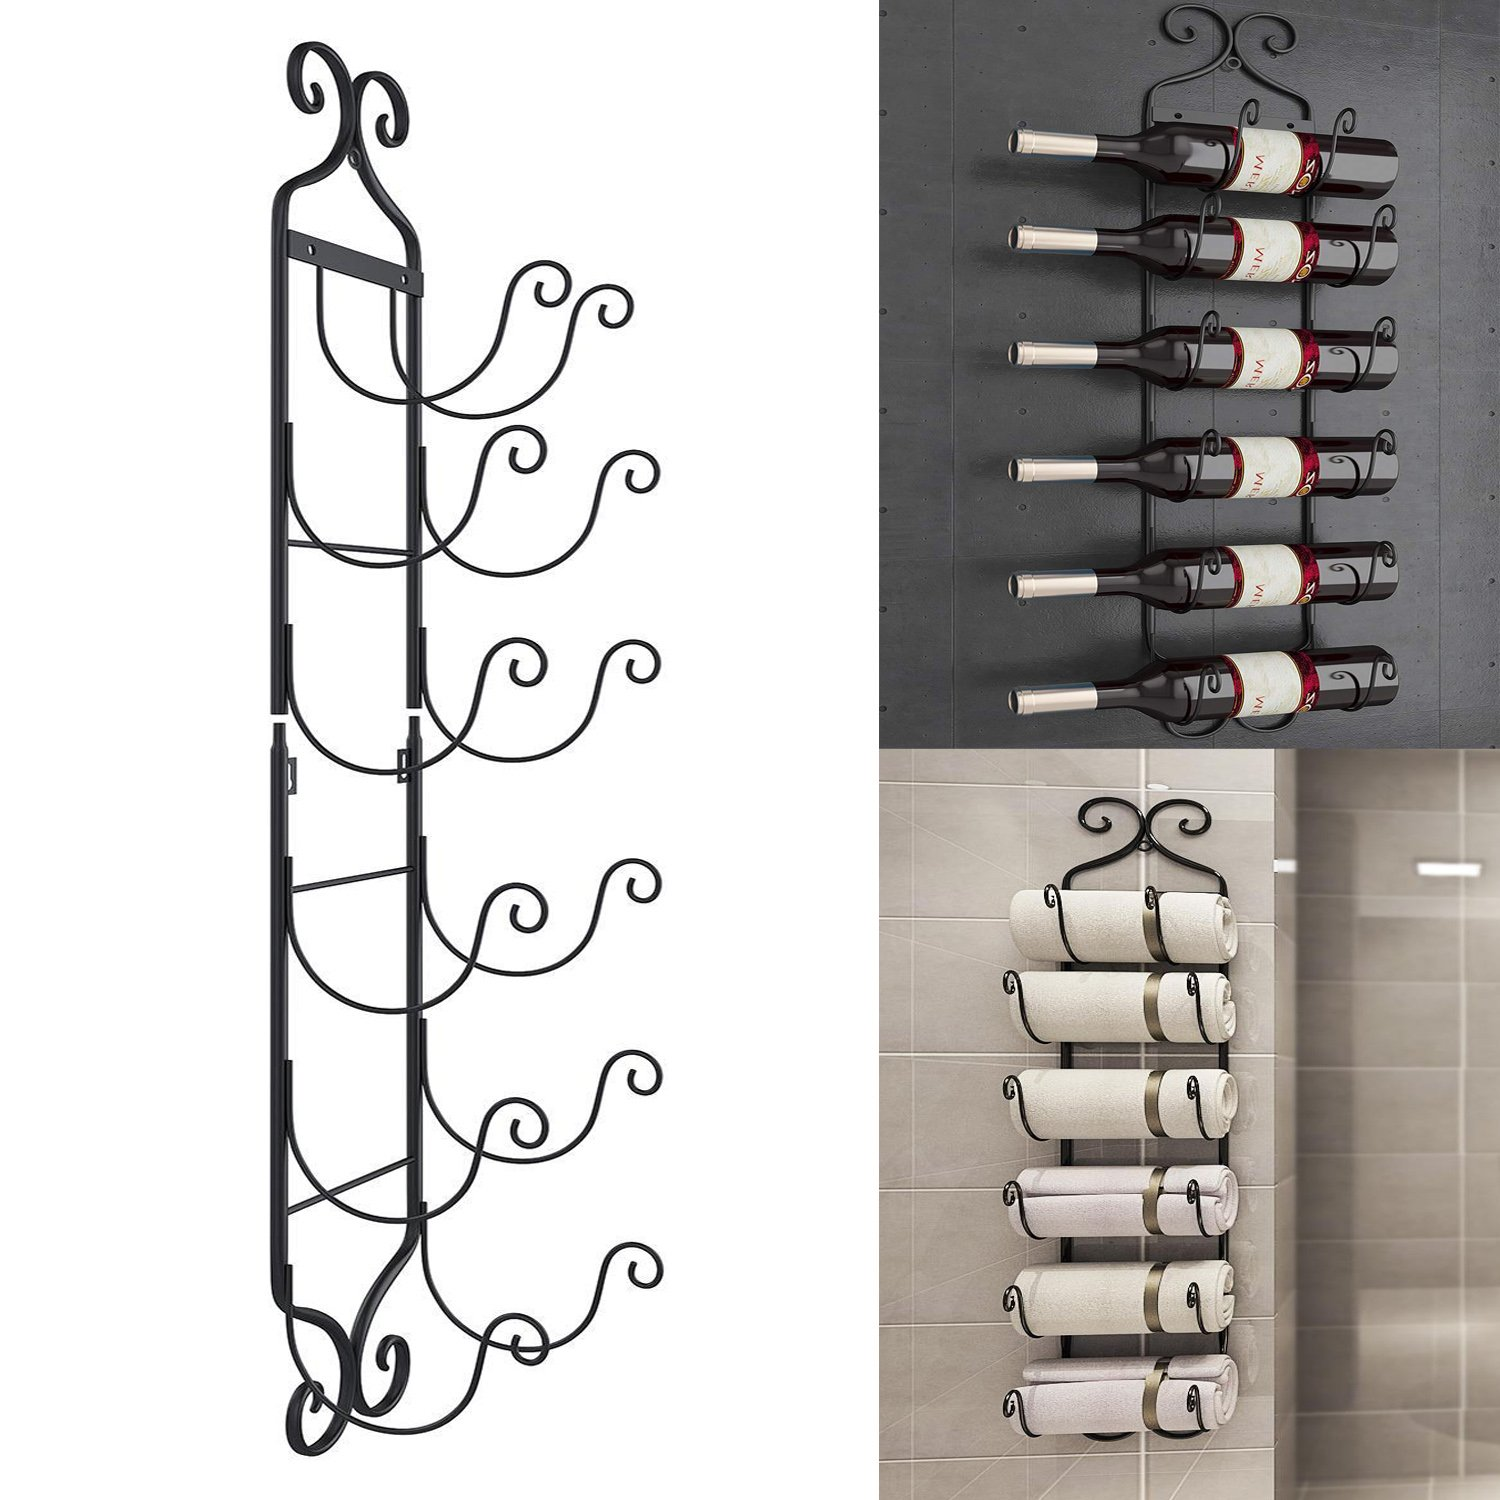 Vividy Wall Mounted Wine Rack, 6 Bottle Metal Hanging Towel Rack, Vertical Decorative Display Stand Towel Holder Shelves (Black)